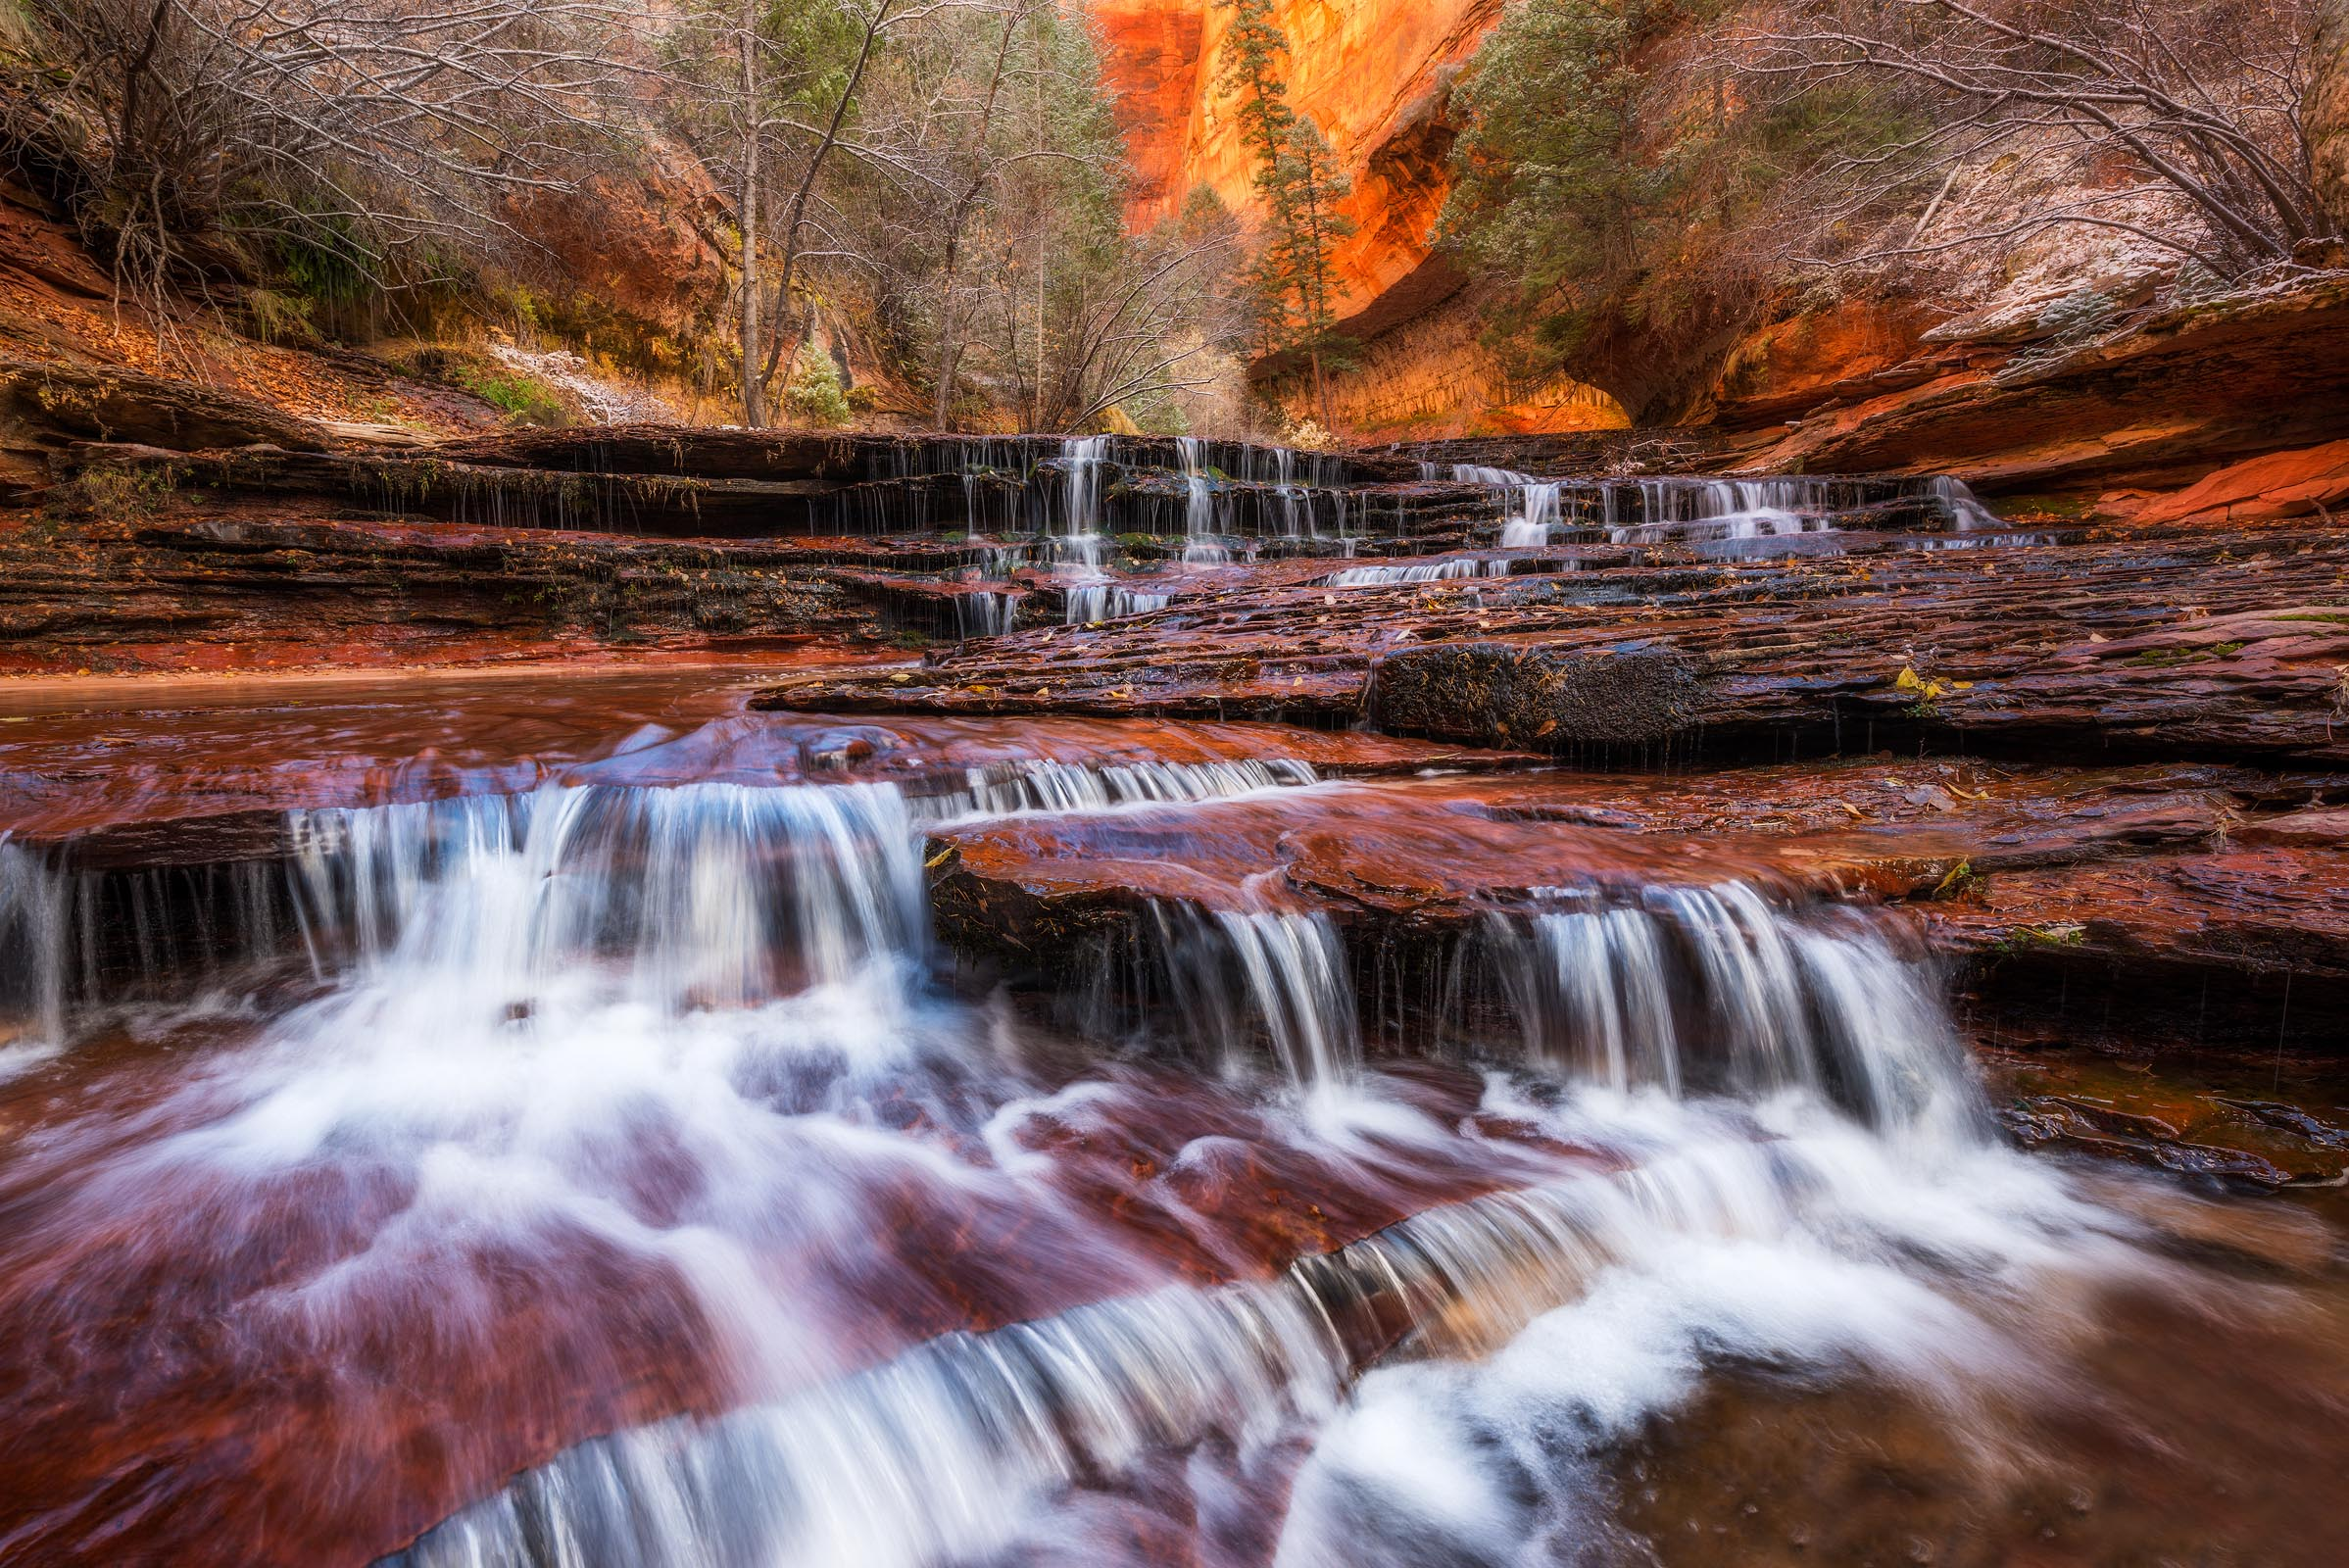 Photograph of Archangel Falls in Zion, Utah by Brent Goldman Photography